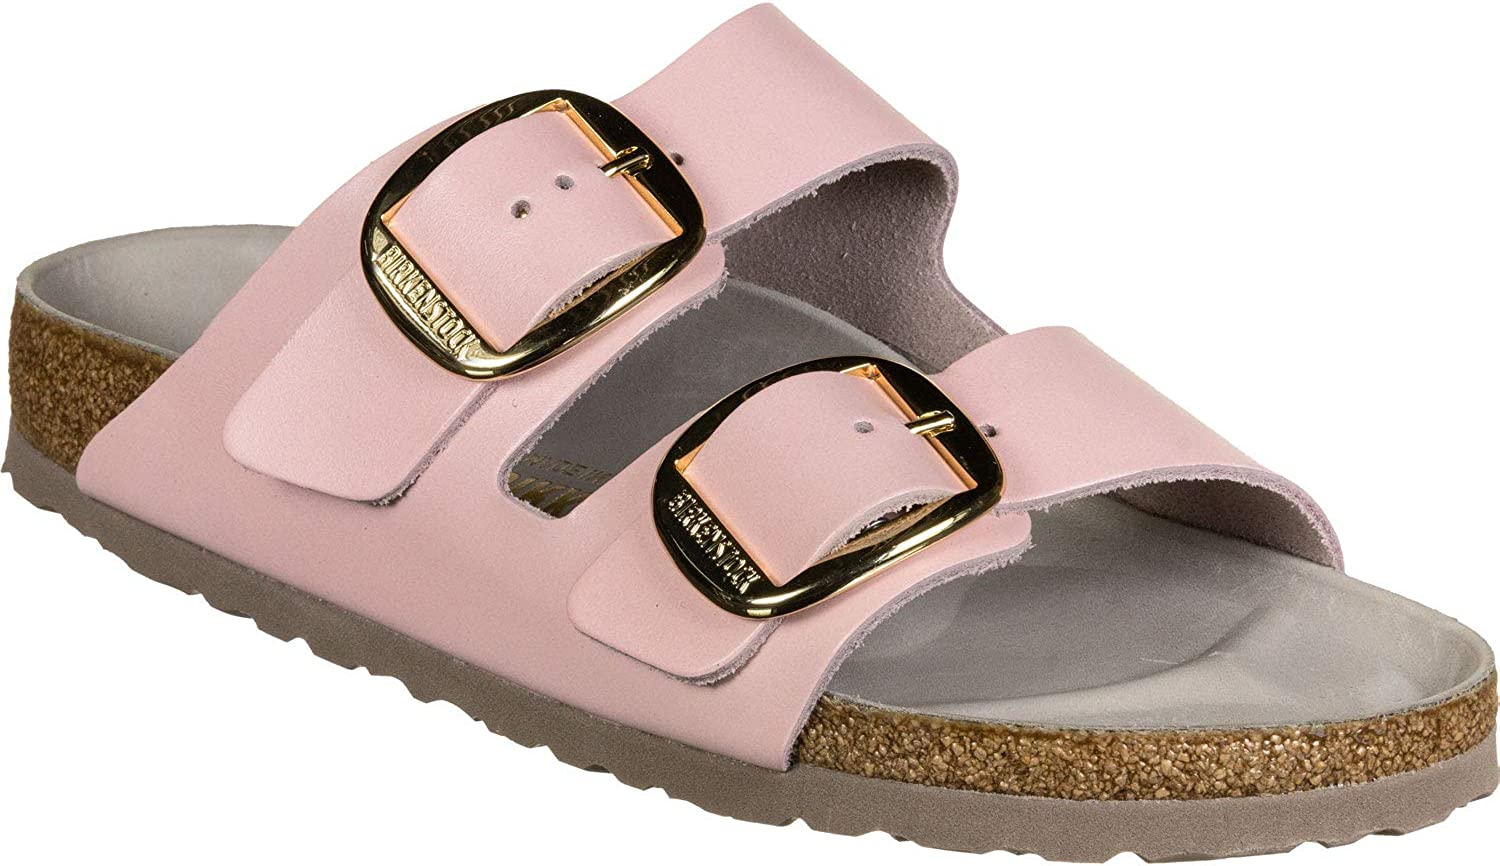 Birkenstock Arizona Big Buckle CiabatteZoccoli Donne Rosa